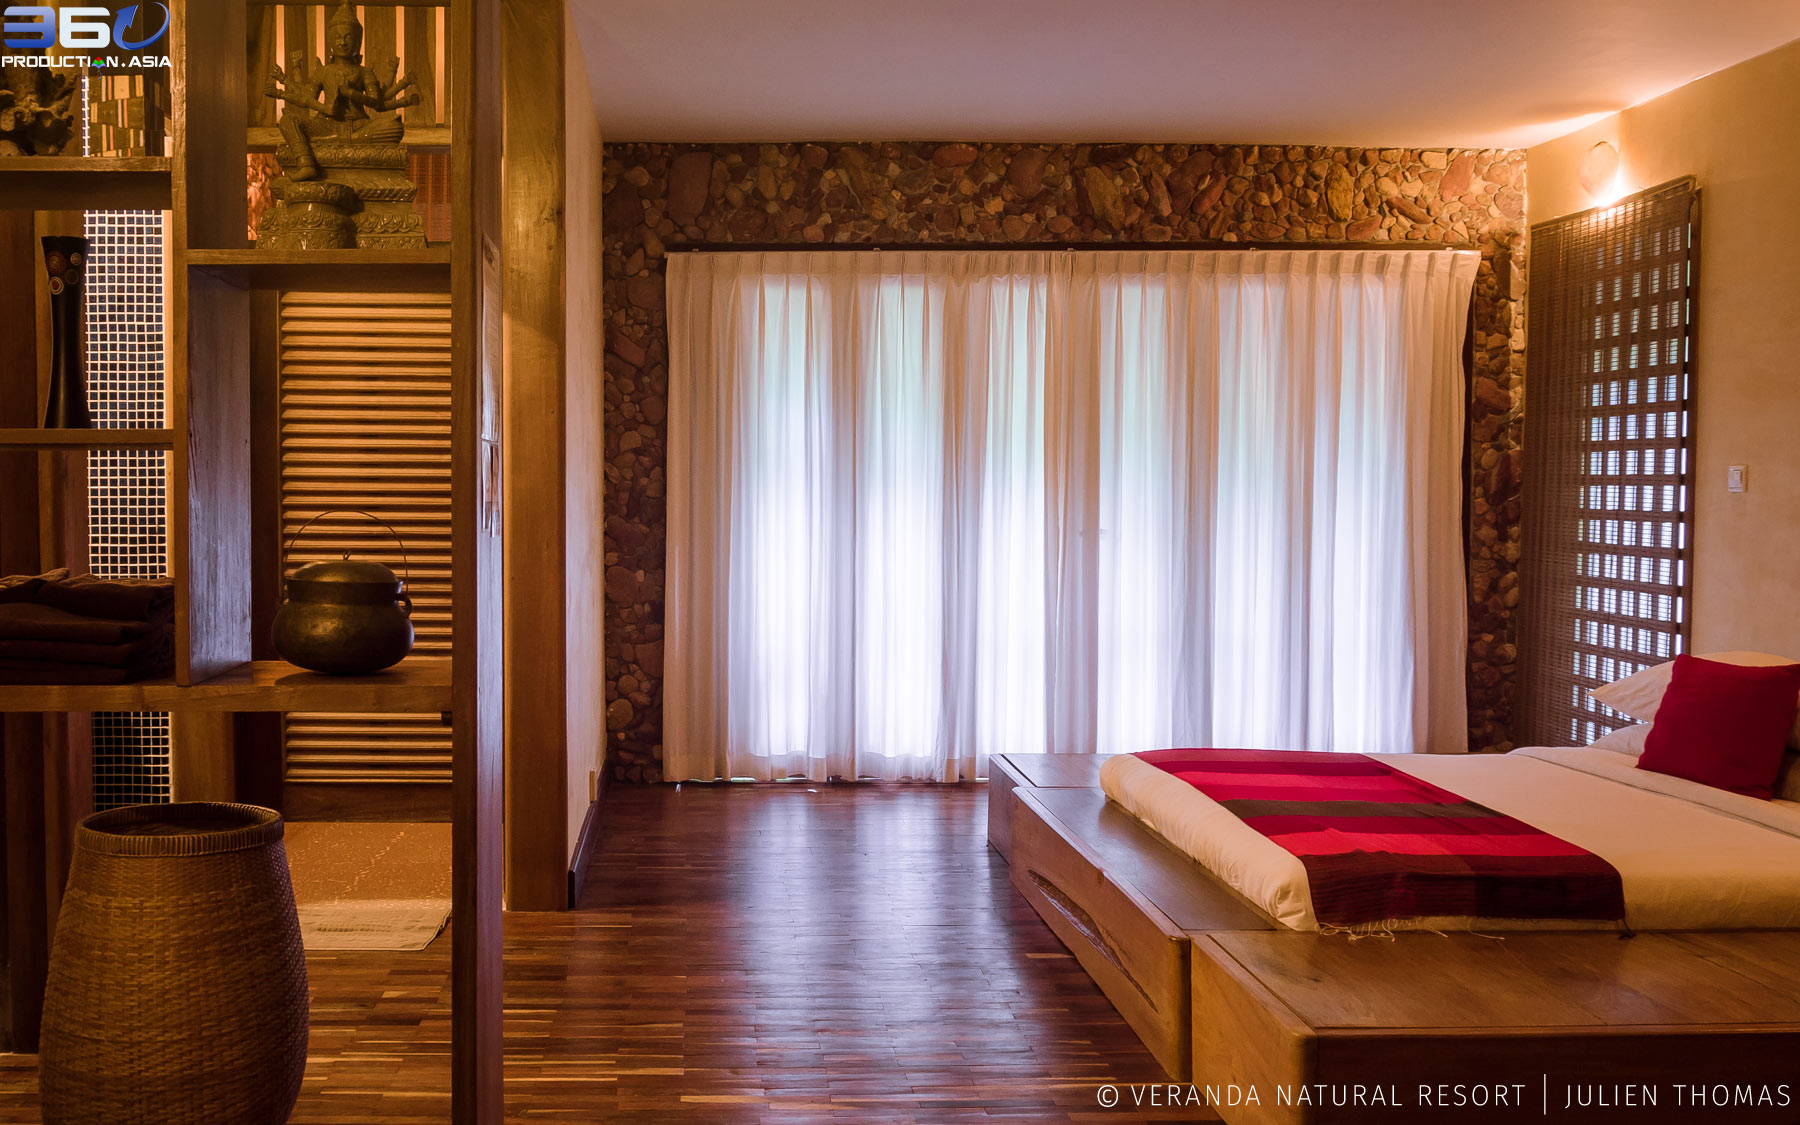 Residence Rosewood bedroom, fully furnished with natural wooden parquet, private bathroom and terrace, commodities and nicely decorated in Veranda Natural Resort.